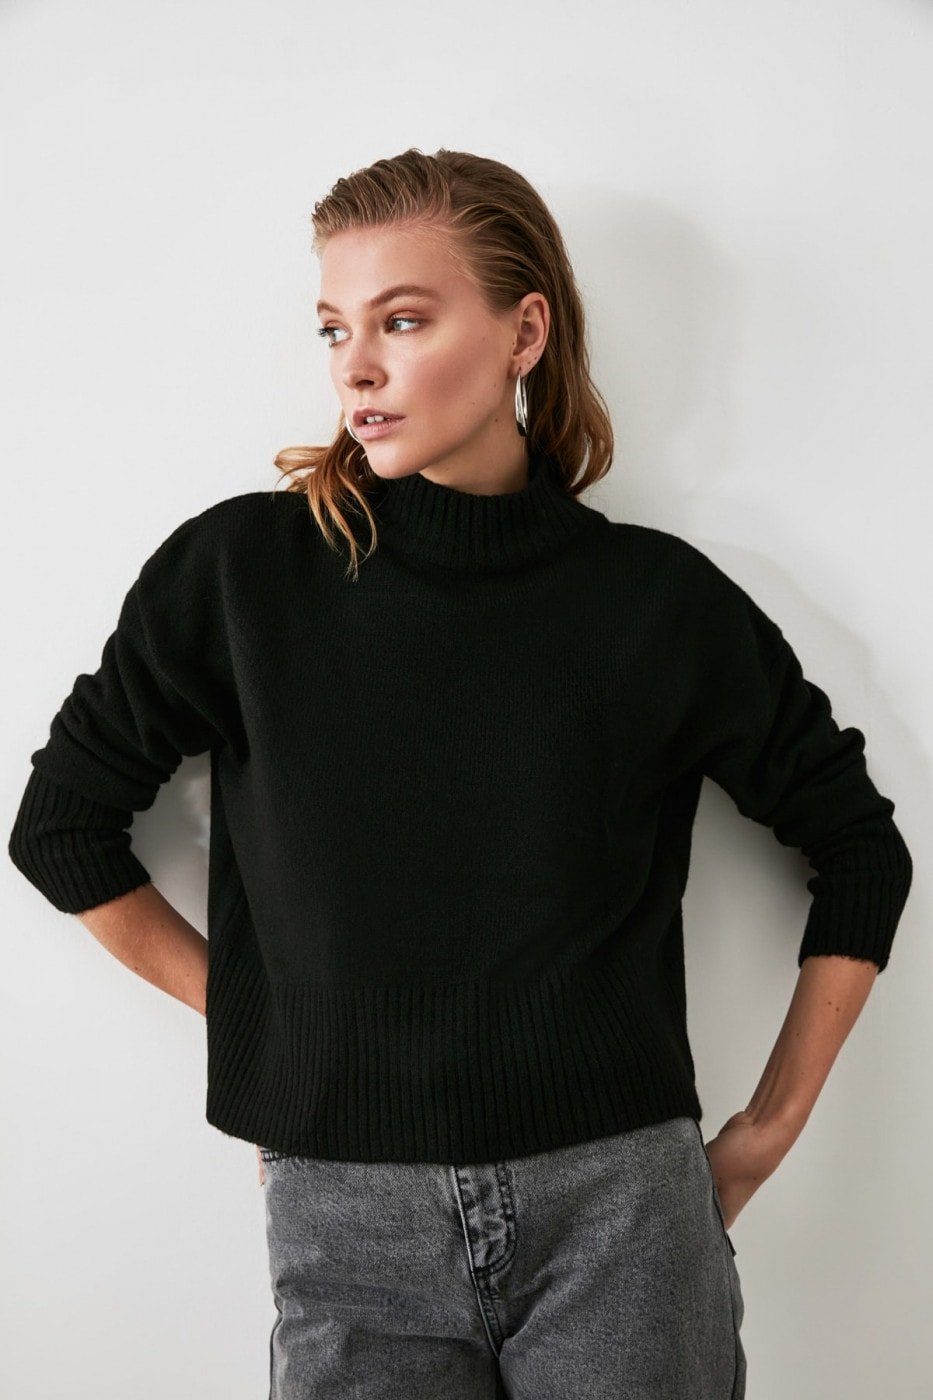 Trendyol Black Upright Collar Basic Knitwear Sweater